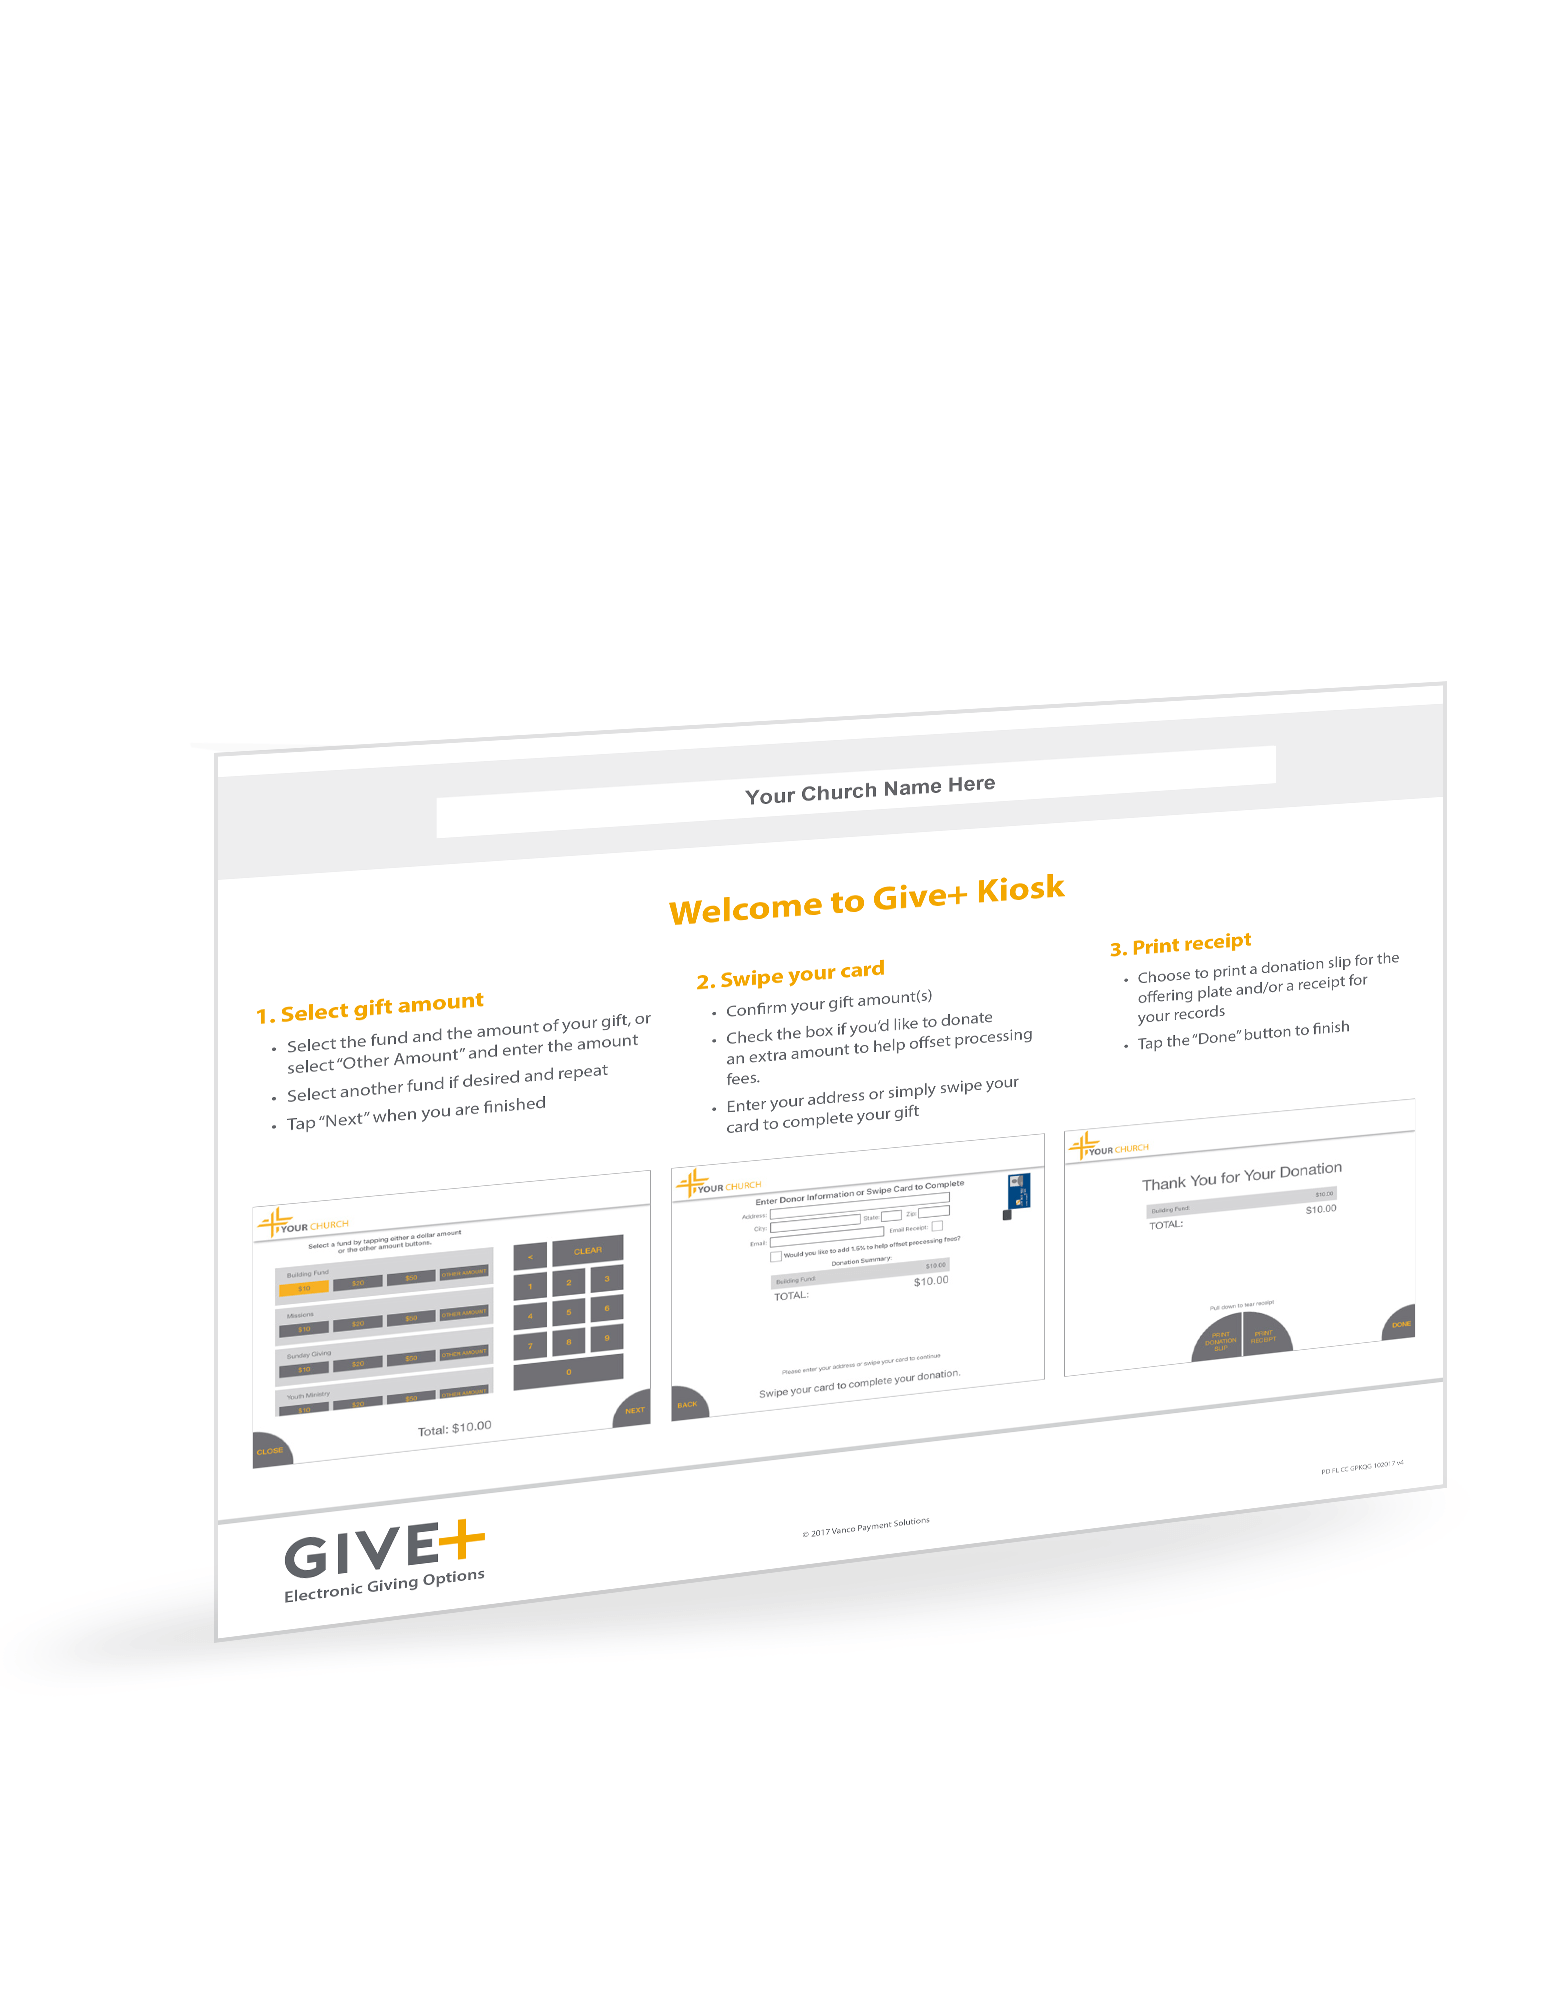 GivePlus Kiosk Quick Guide